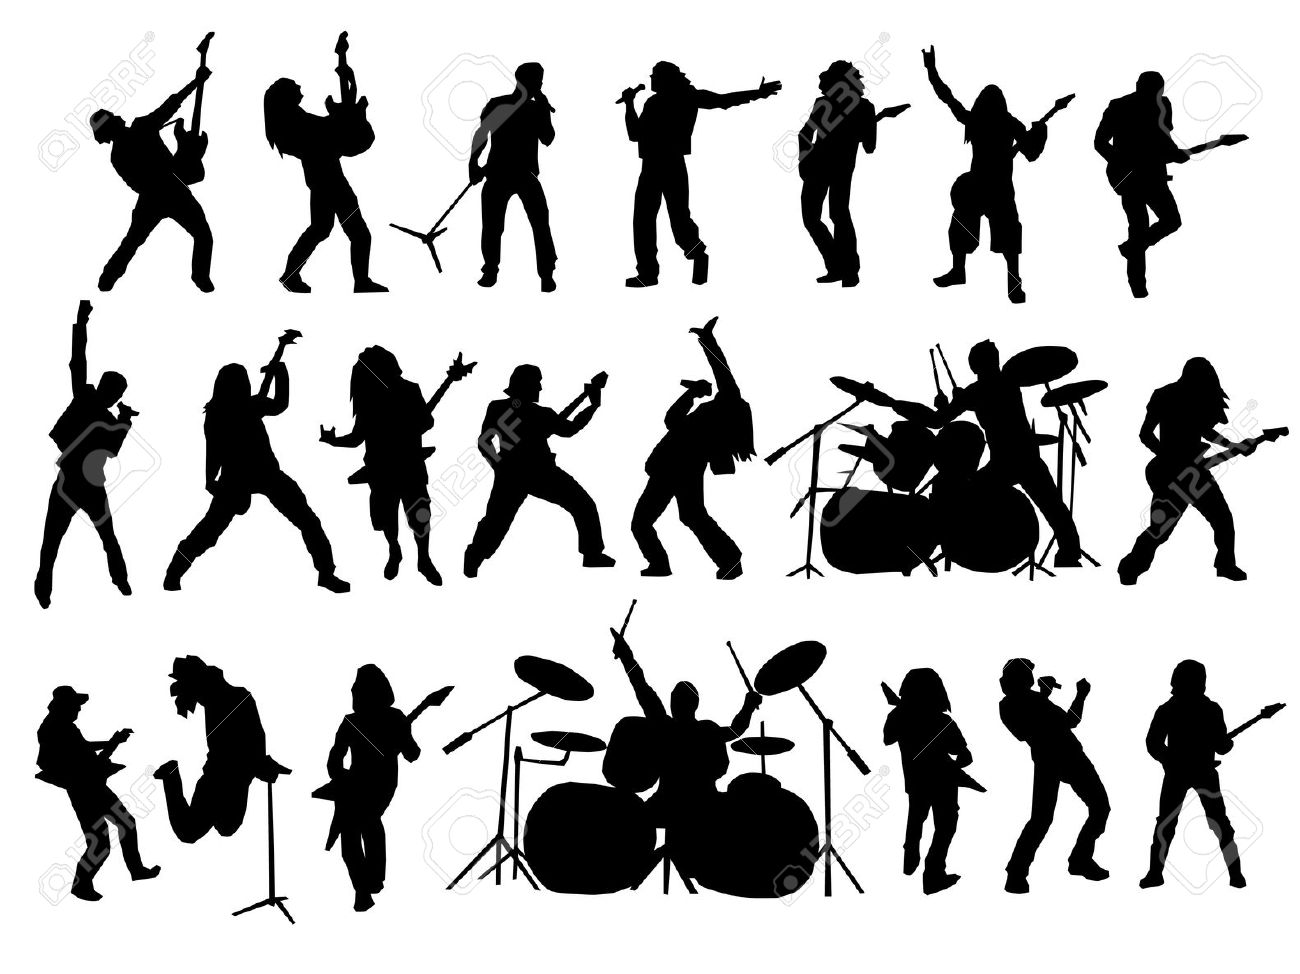 Free marching silhouette download. Band clipart vector